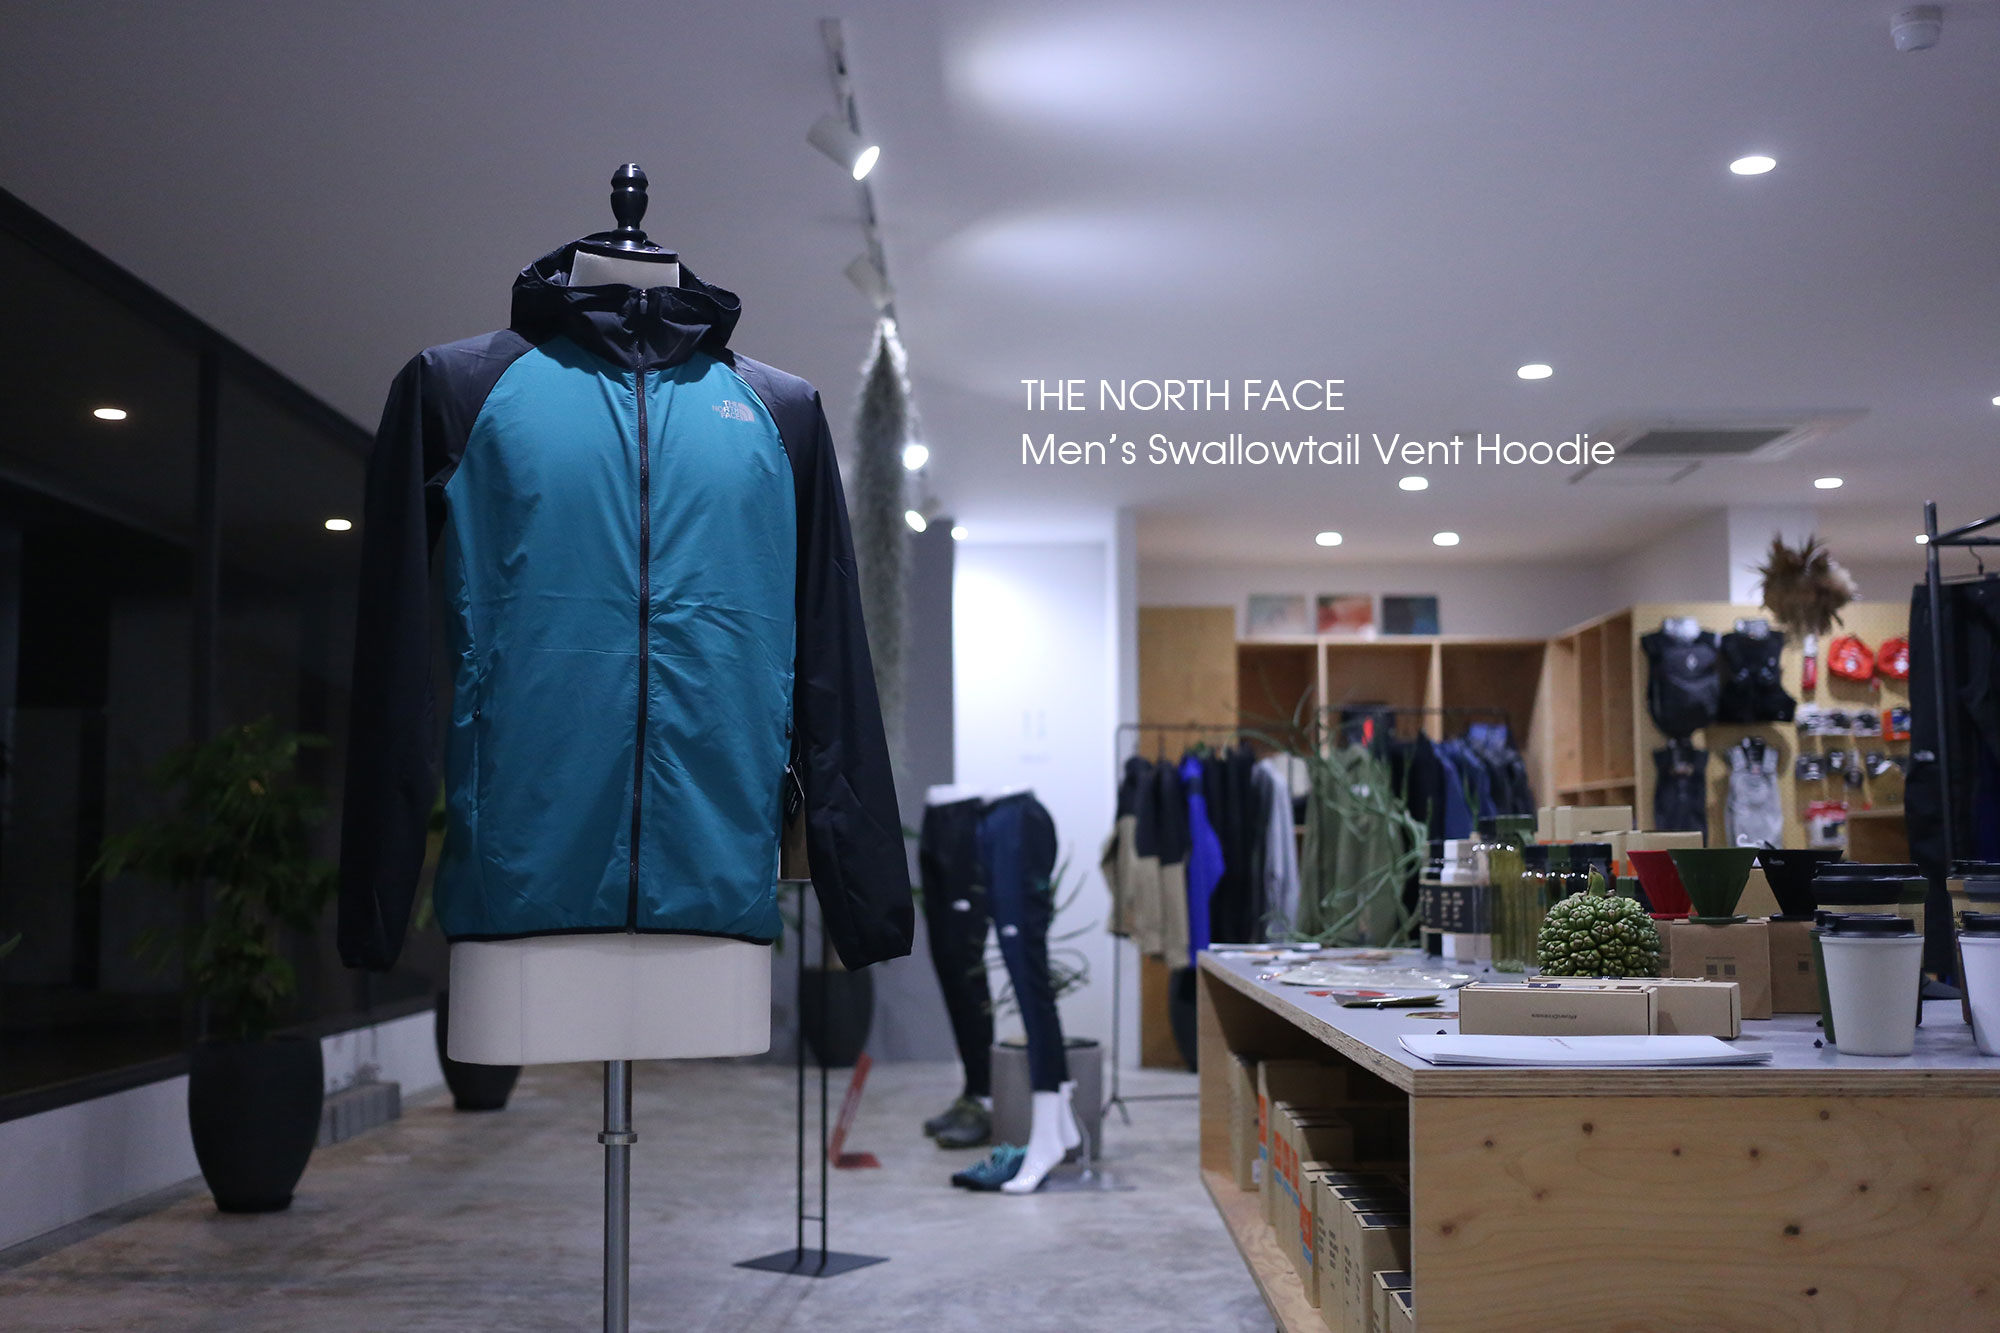 THE NORTH FACE -Swallowtail Vent Hoodie-